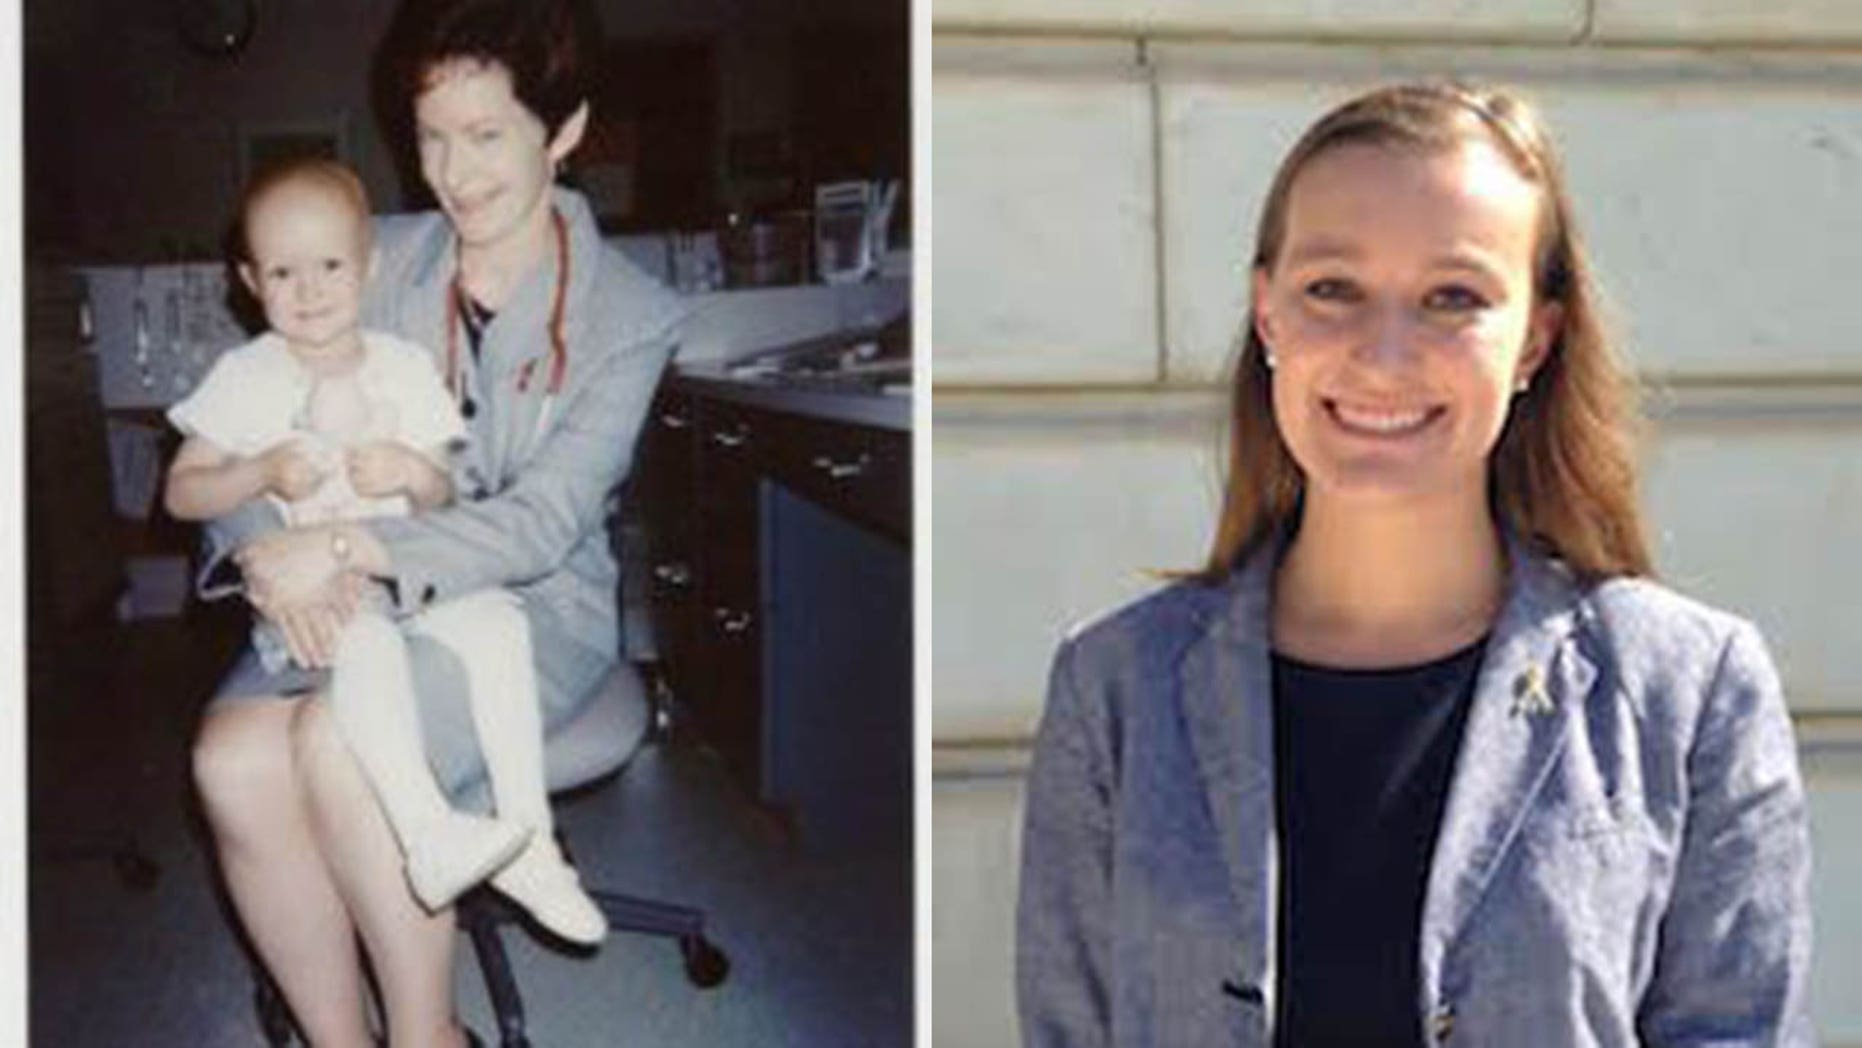 Jennifer Toth, graphic left with a member of her caring group during CHOP, and right benefaction day, now works as a helper on an quadriplegic oncology section during CHOP.